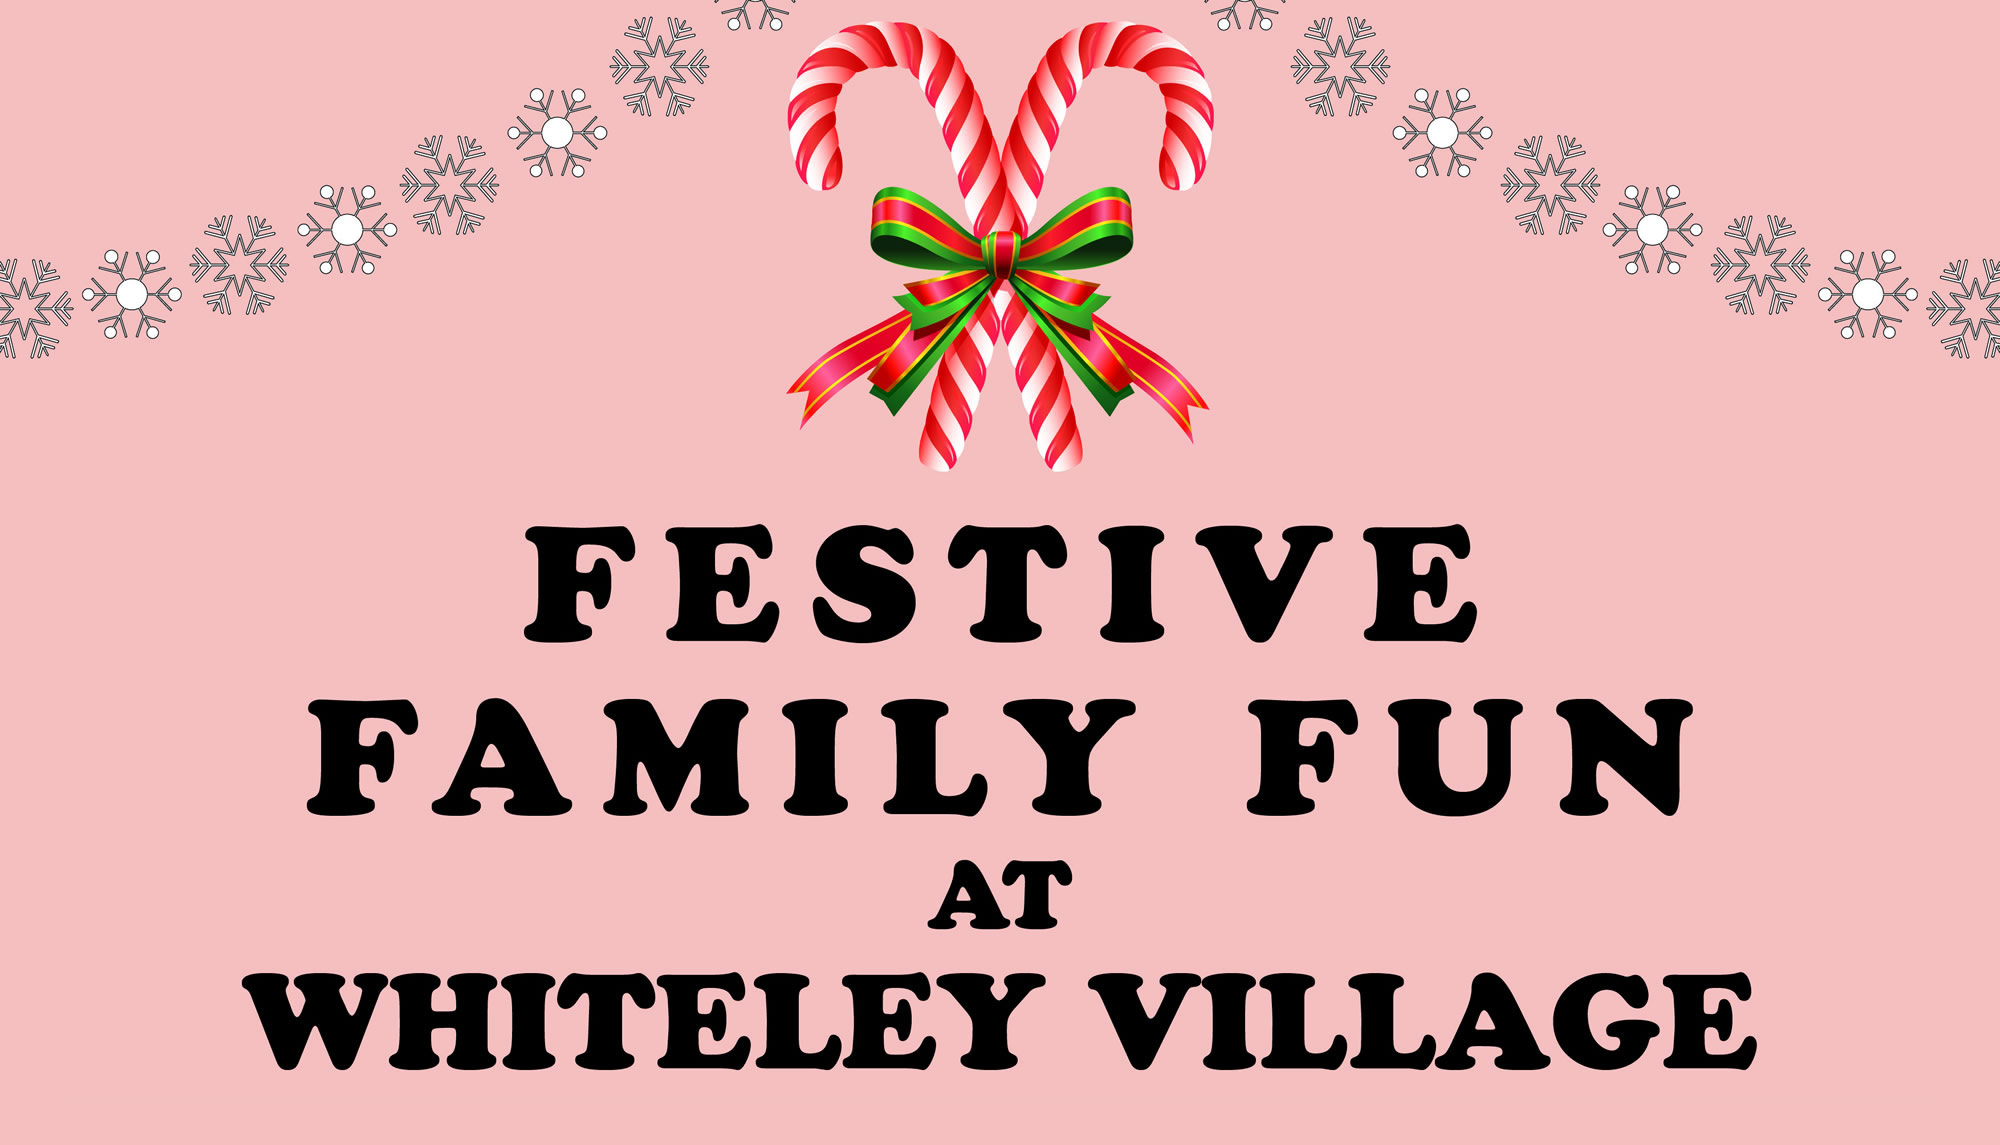 Festive Family Fun Event at Whiteley Village – Sunday 9th December 2018